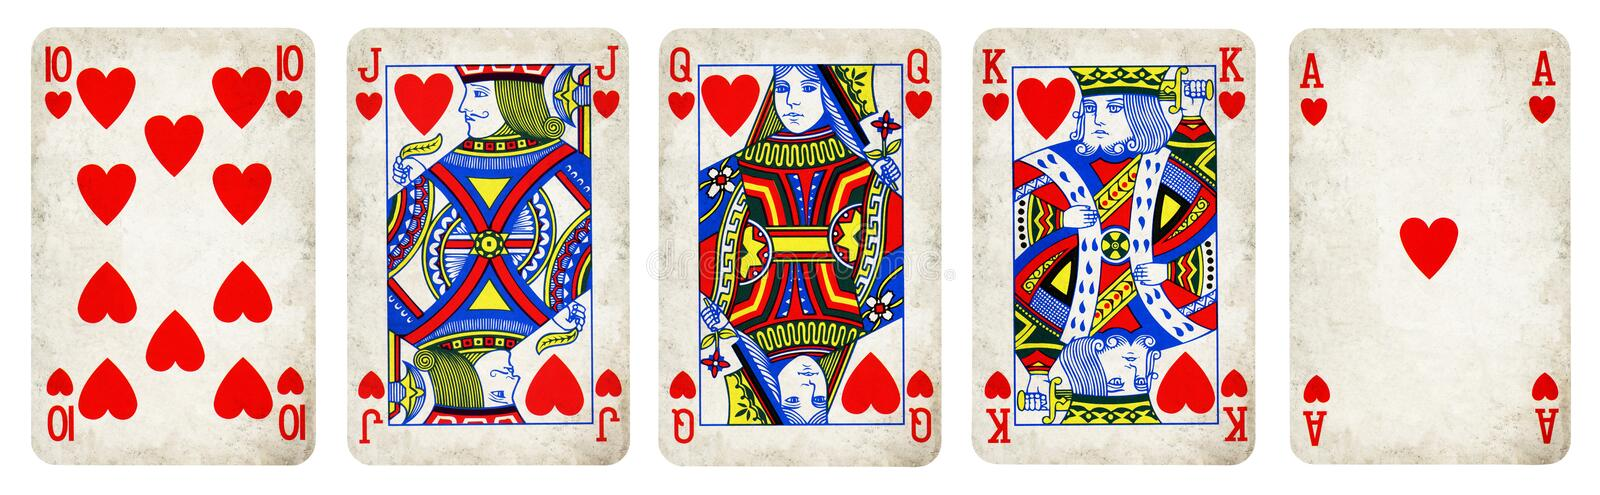 Hearts Suit Vintage Playing Cards stock photos